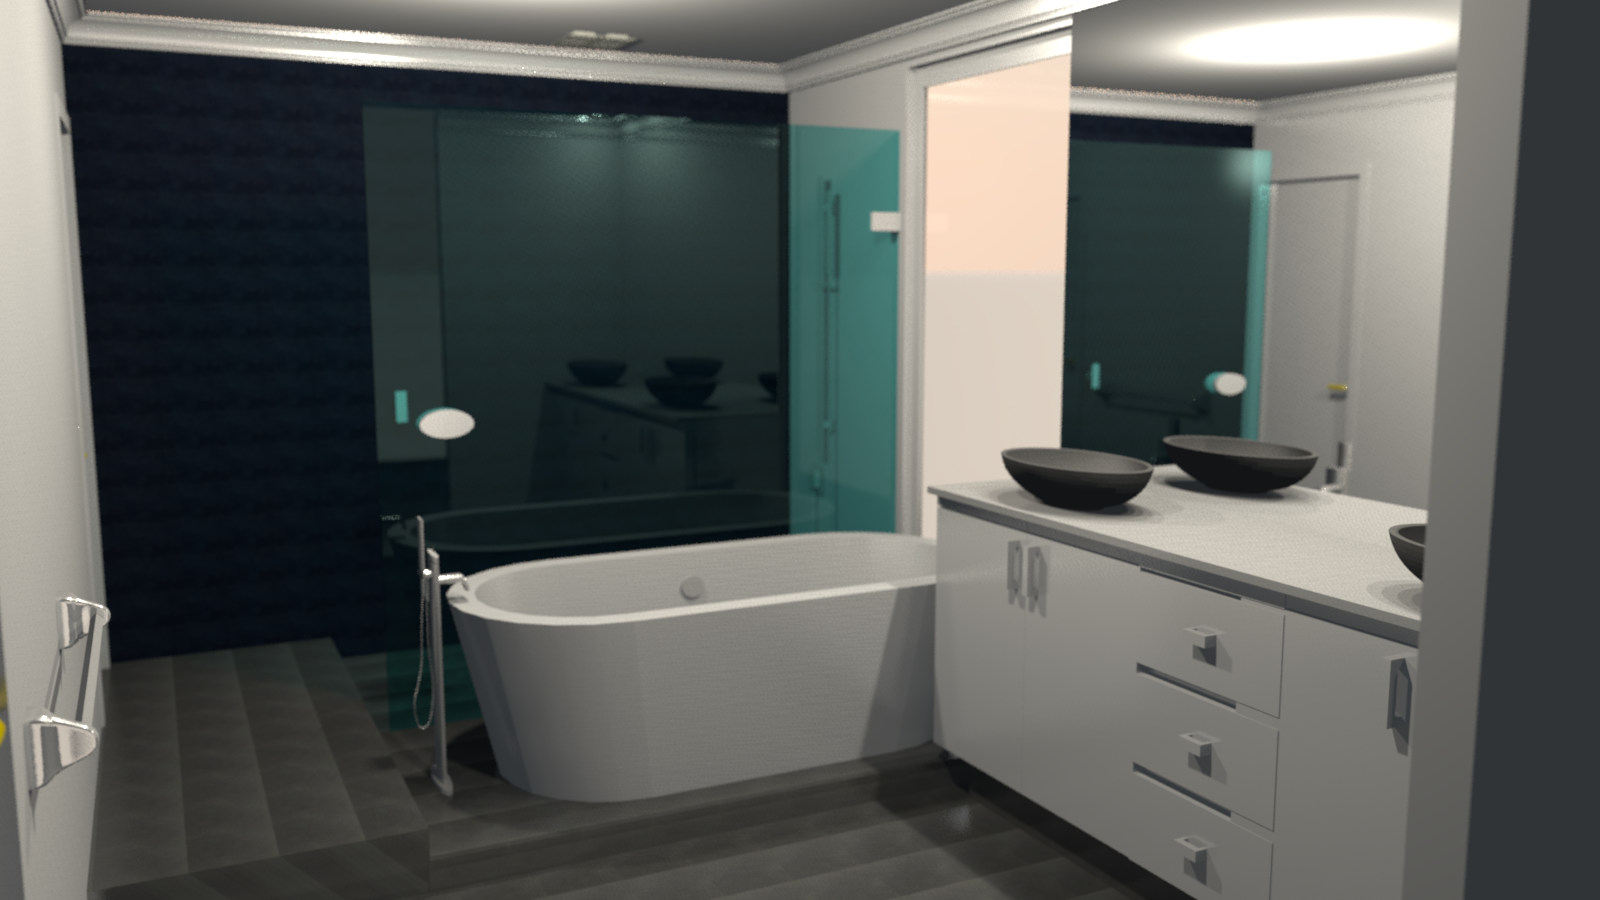 Building the rendezvous with ventura homes tools for Ensuite design tool